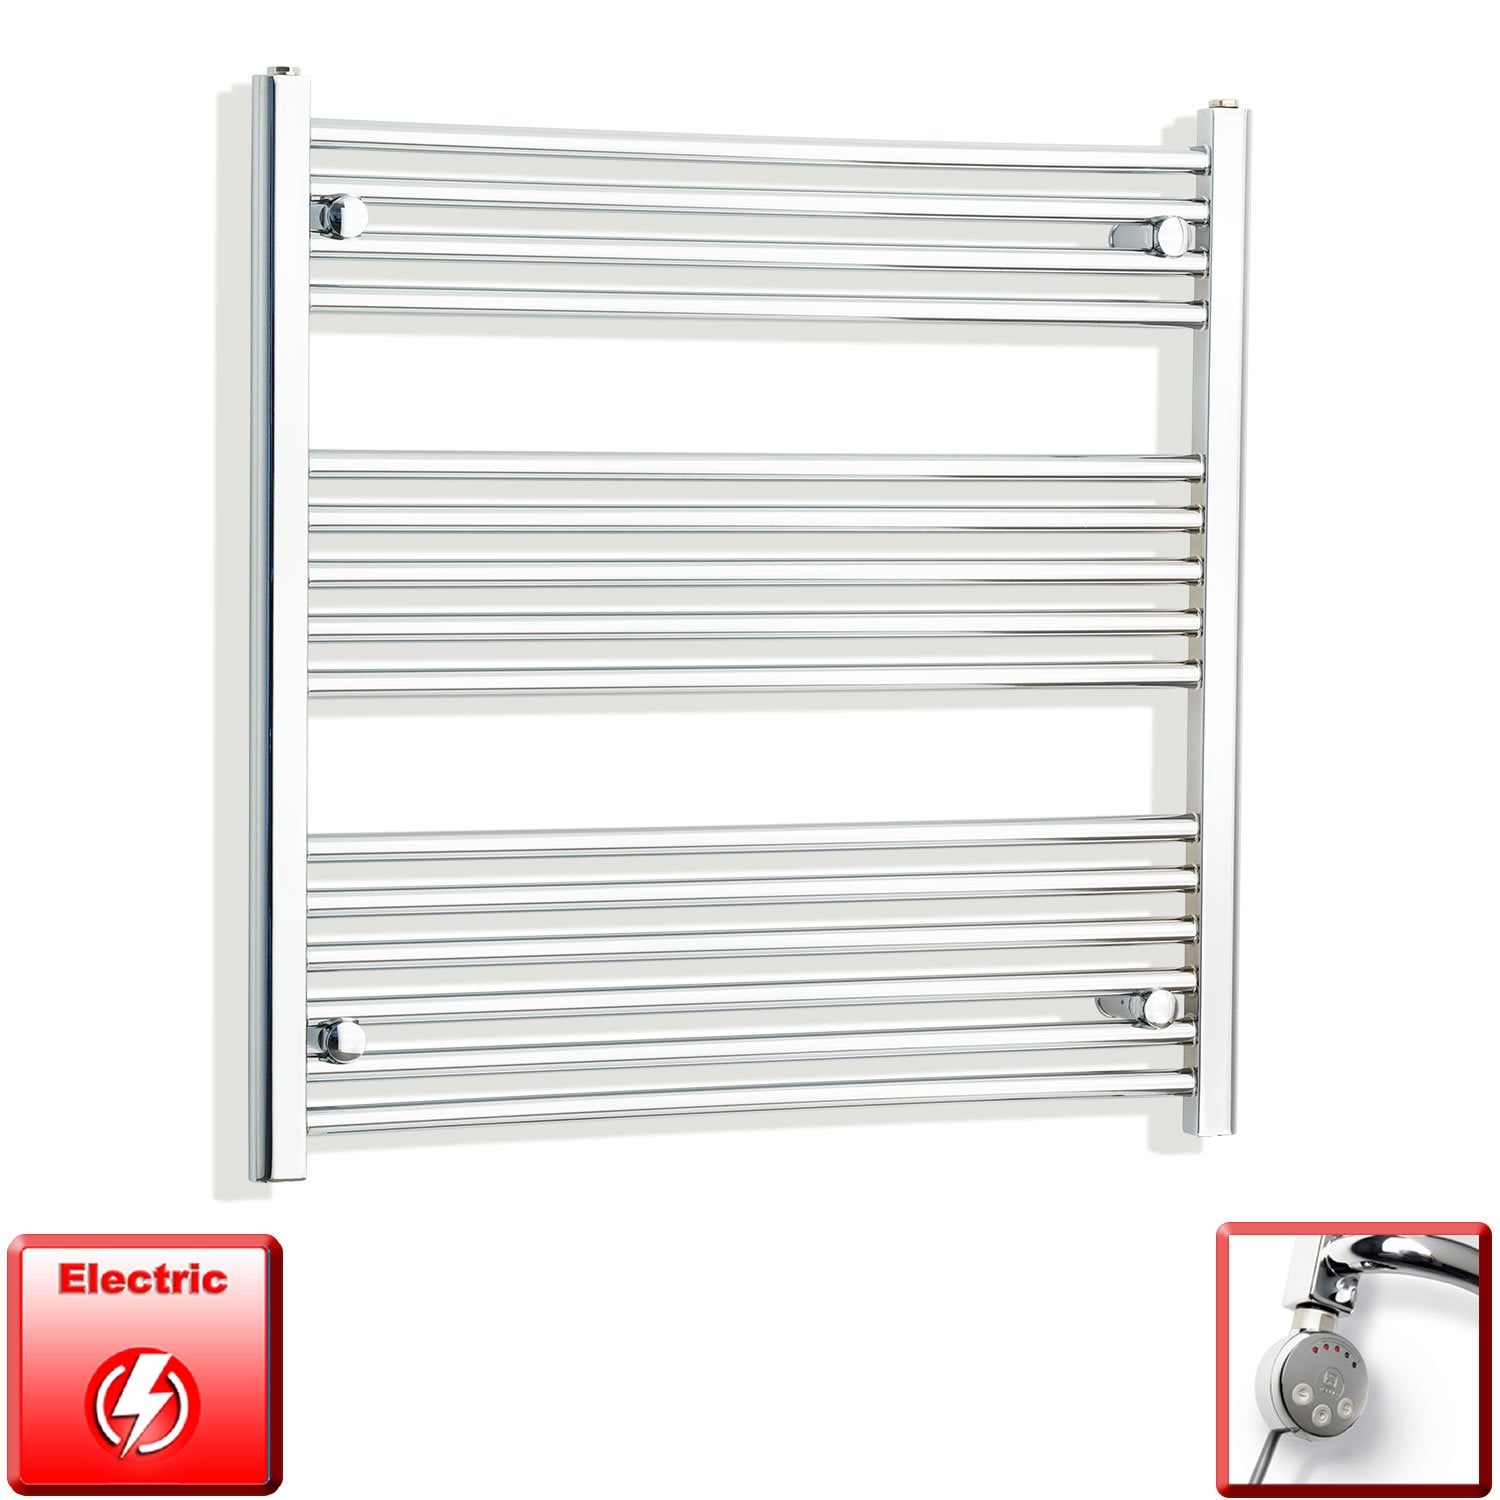 750mm Wide 800mm High Flat Or Curved Chrome Pre-Filled Electric Heated Towel Rail Radiator HTR,MEG Thermostatic Element / Straight